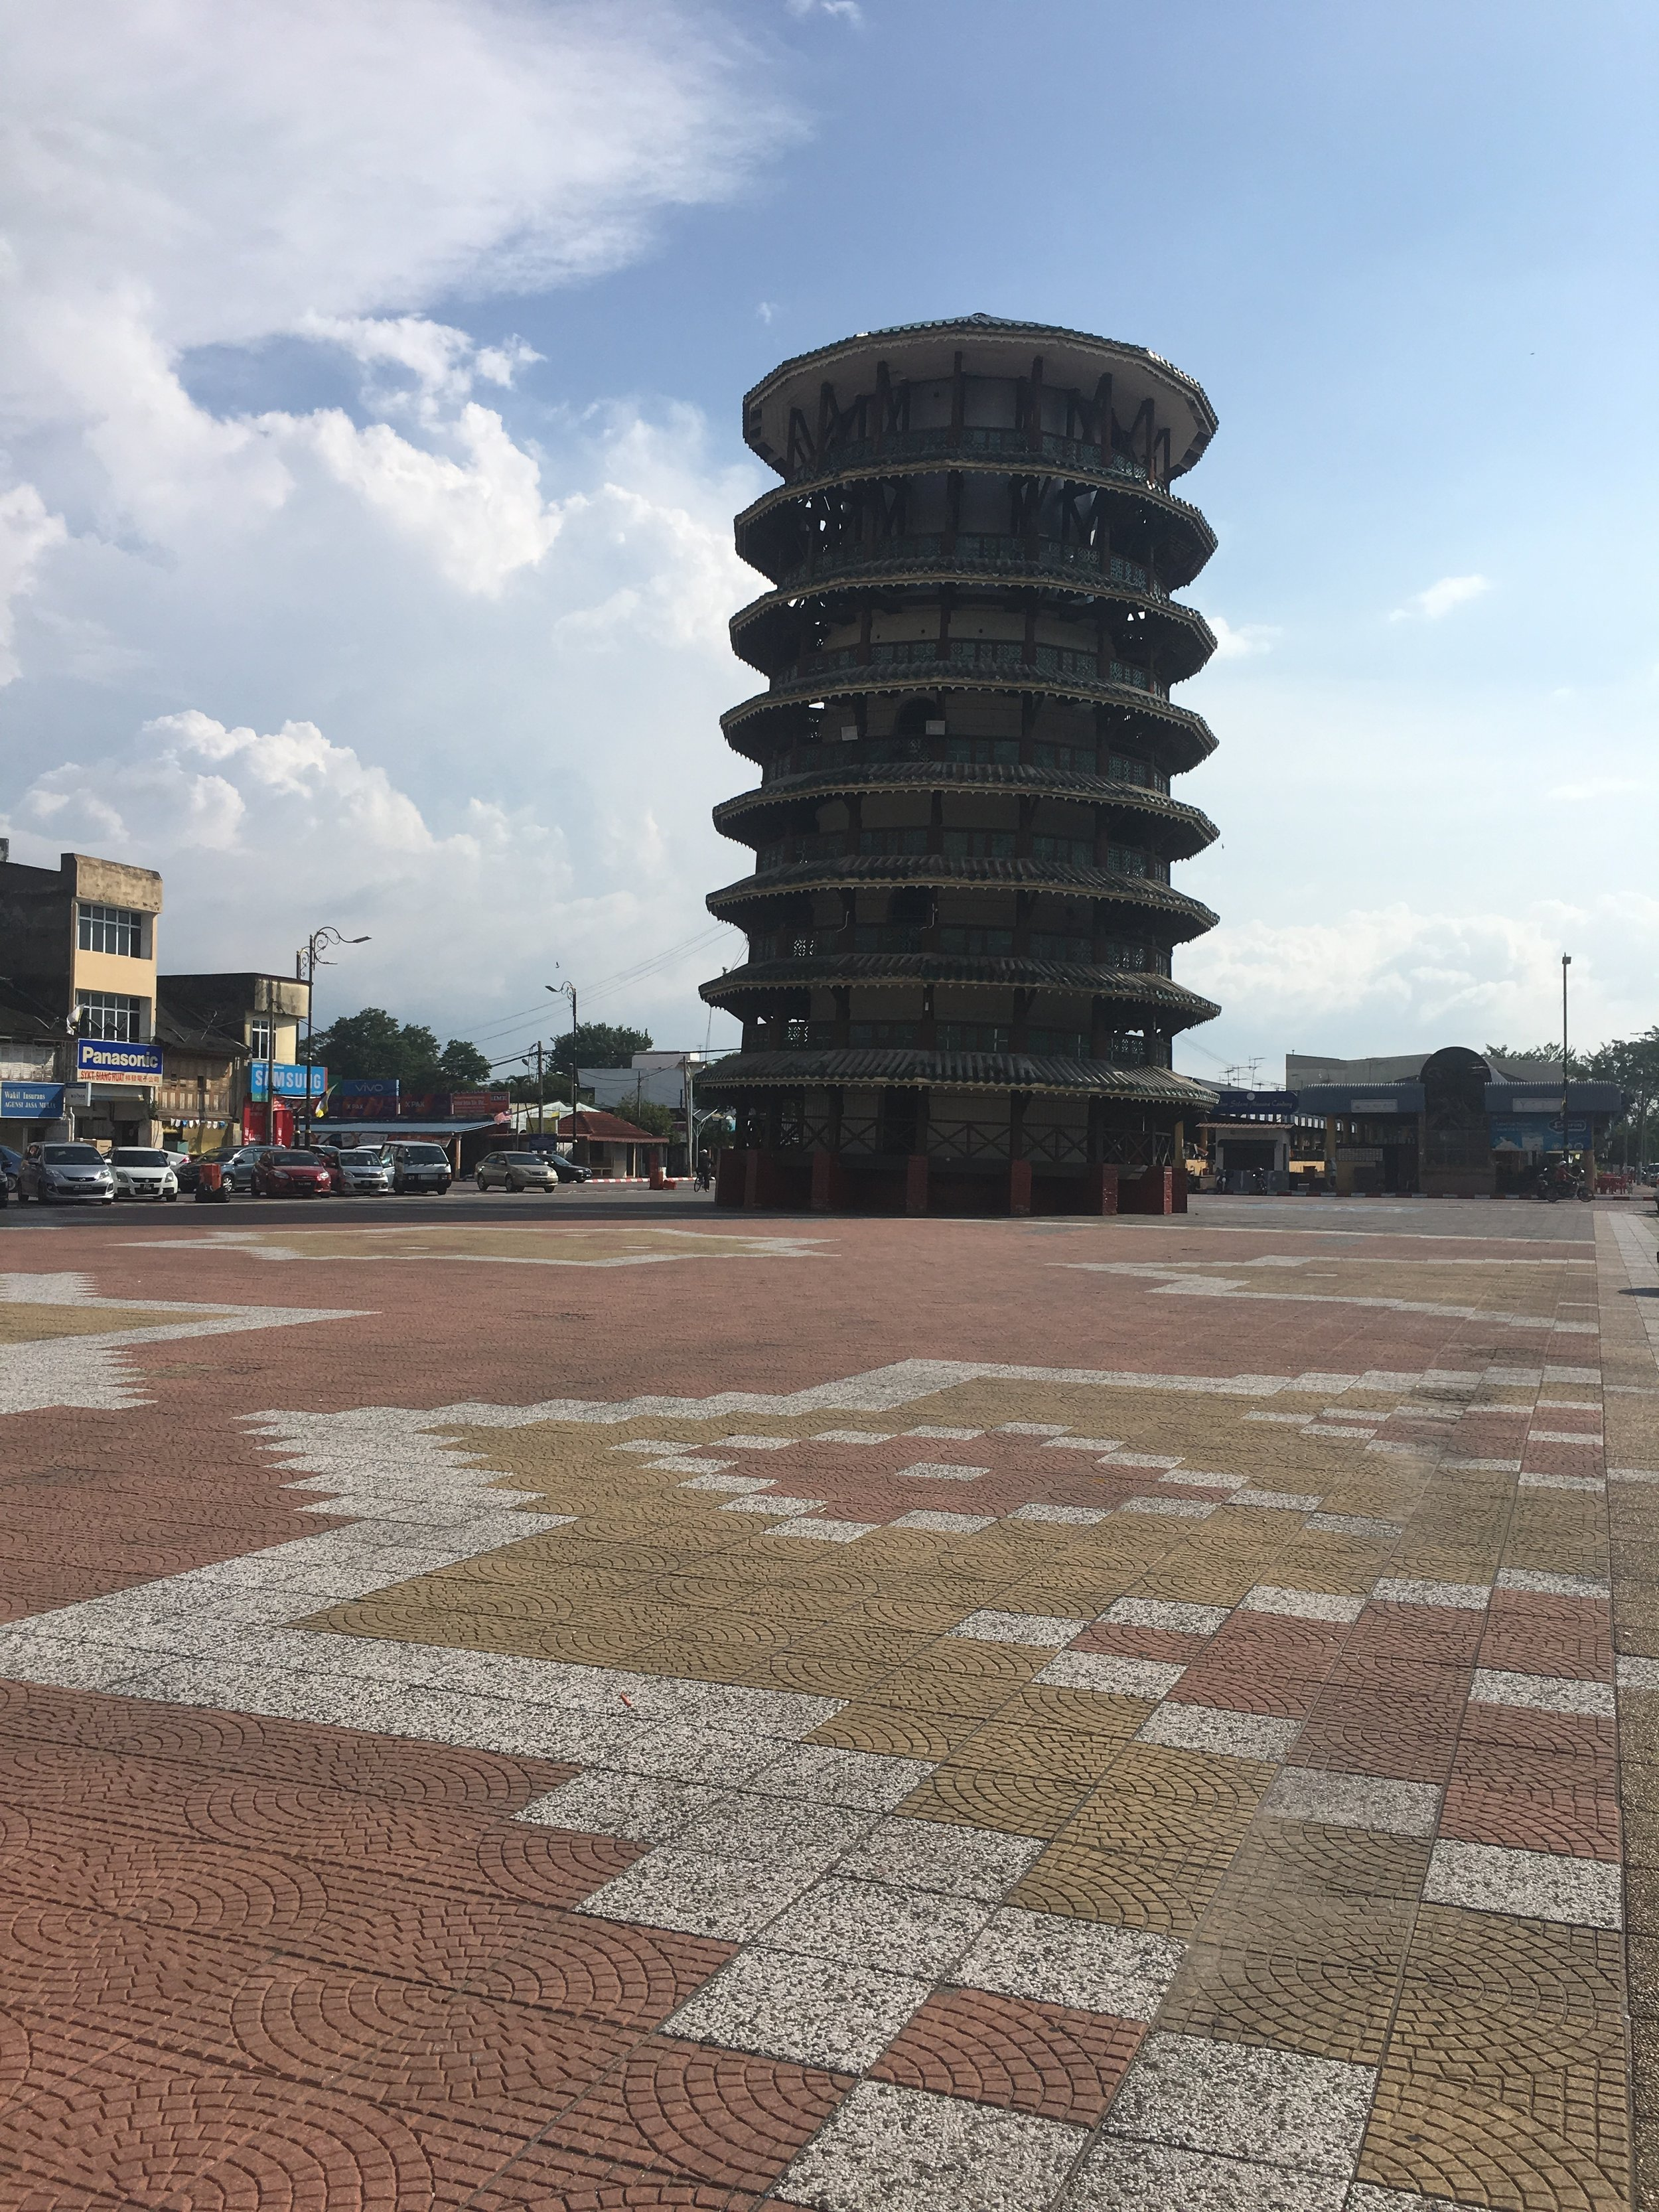 -Teluk Intan also home to Malaysias own leaning tower of Pisa, as it is known.